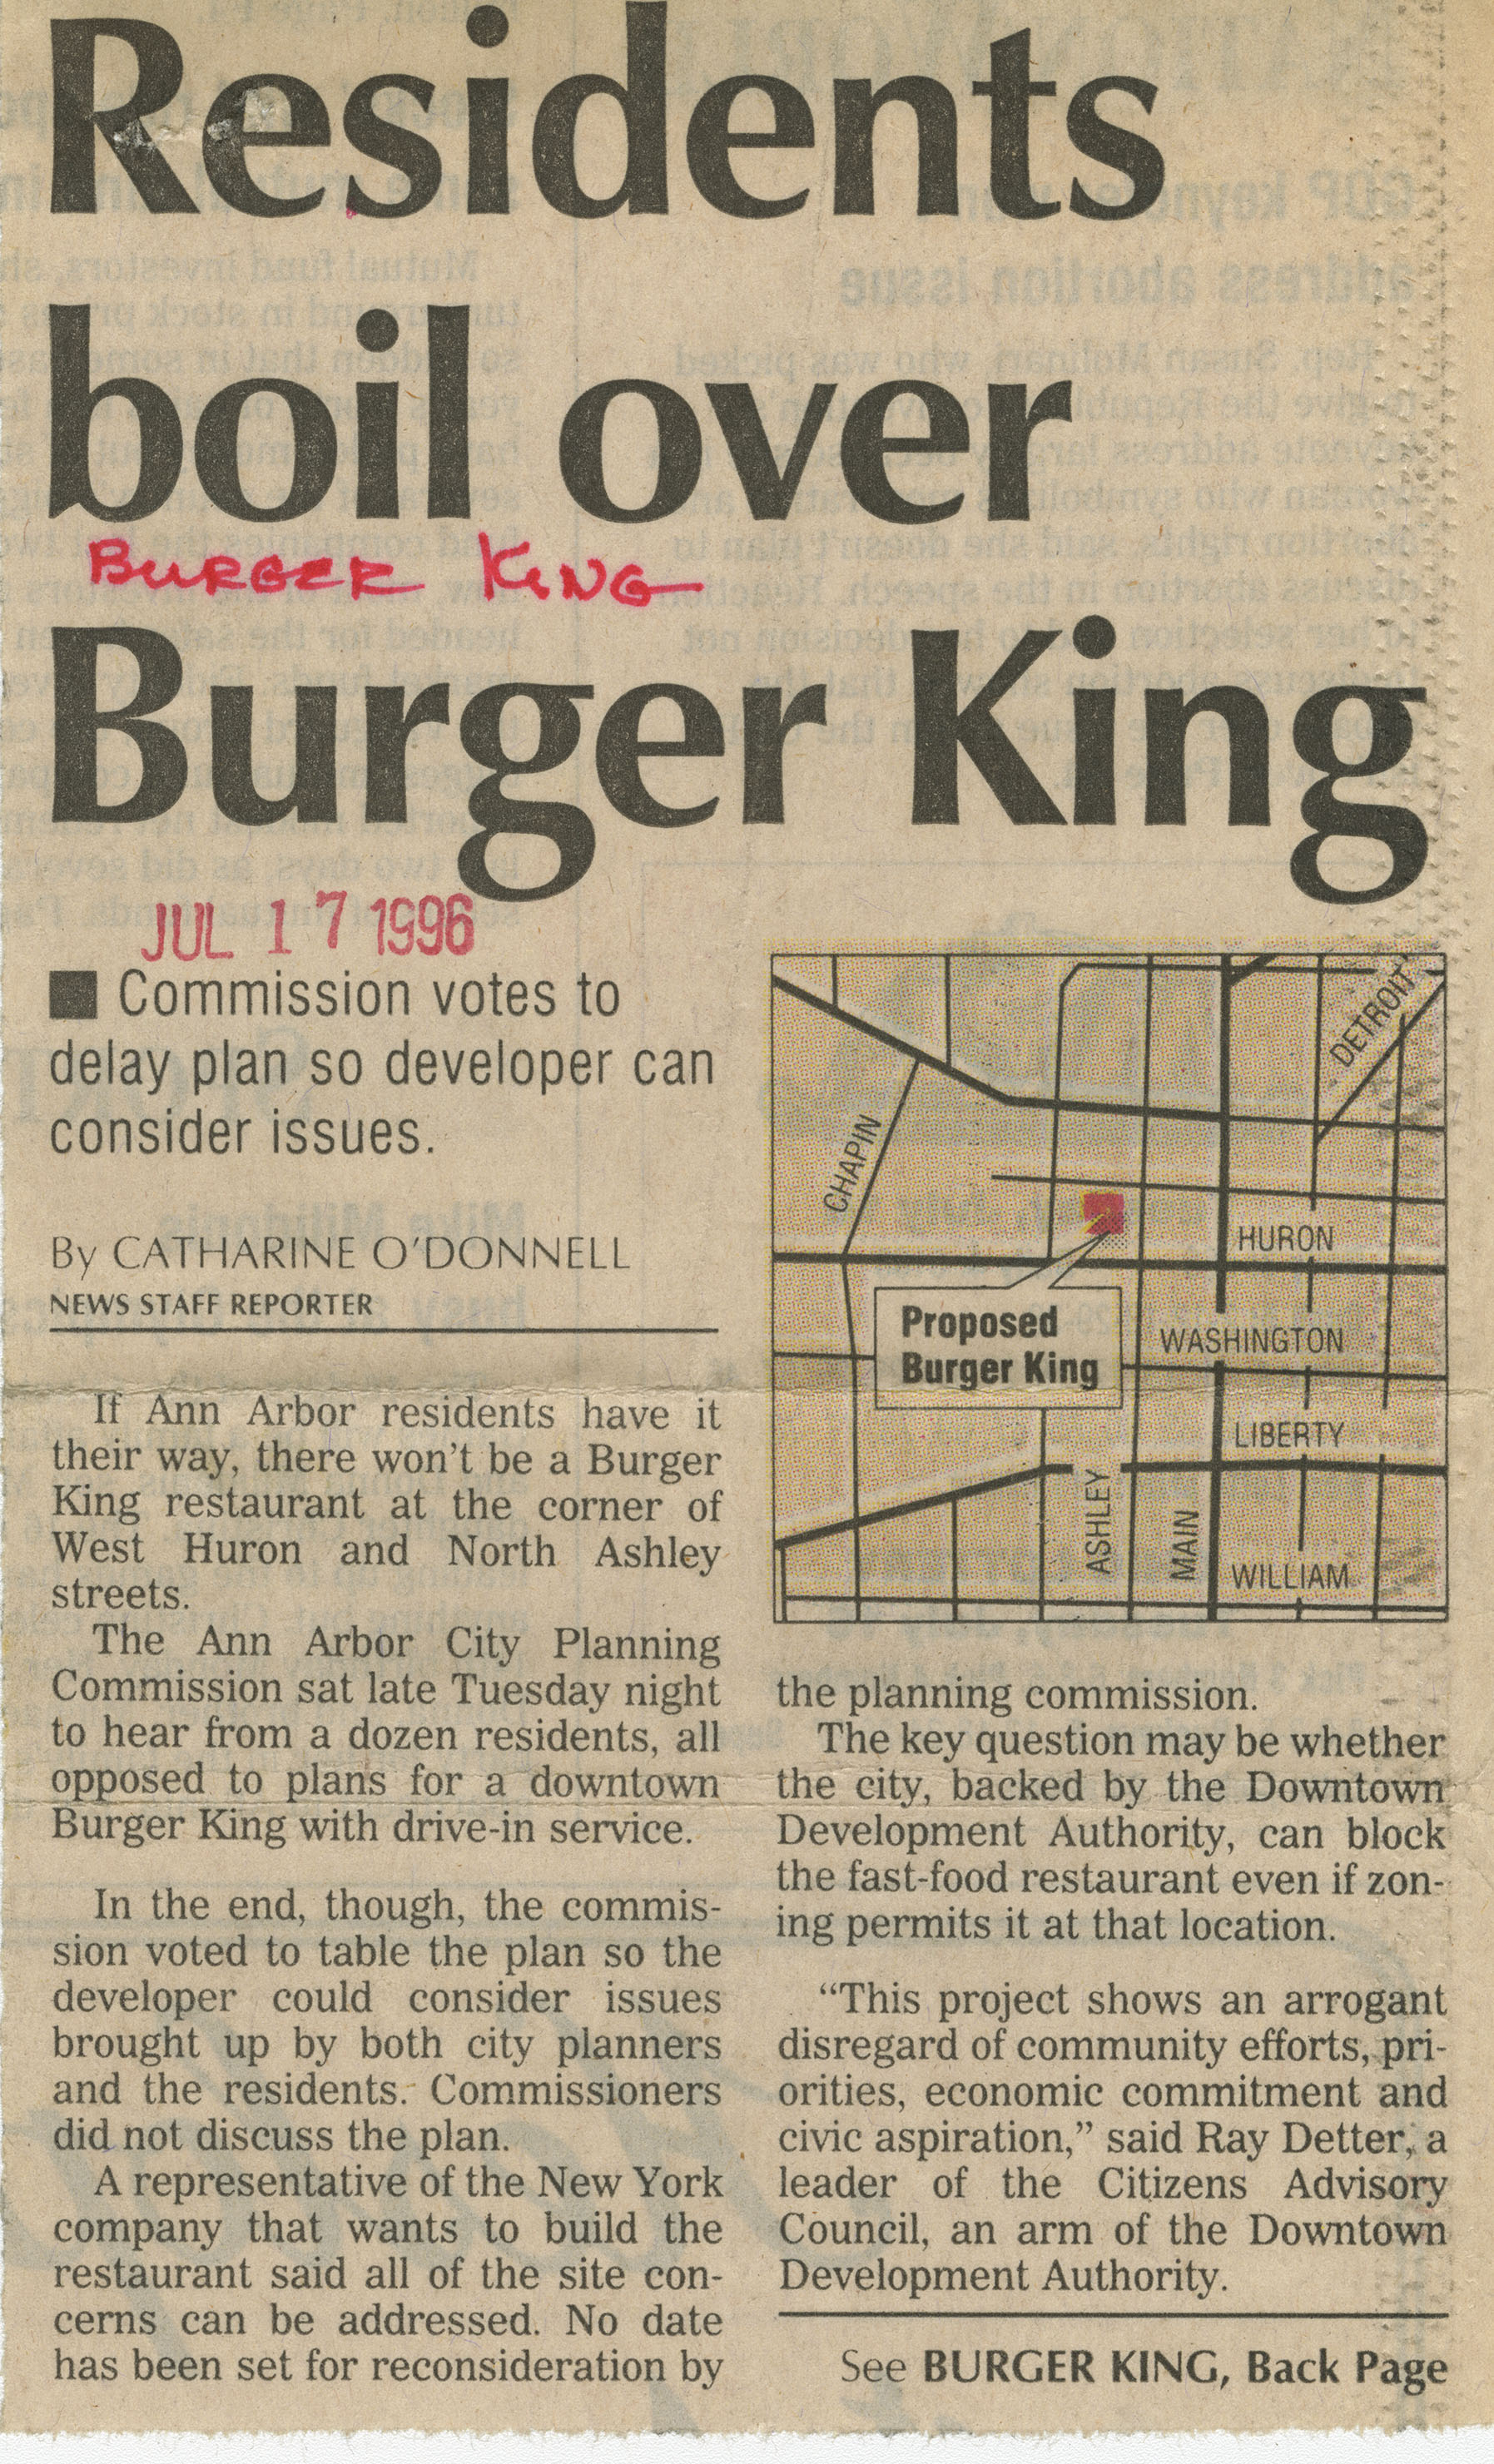 Residents boil over Burger King image